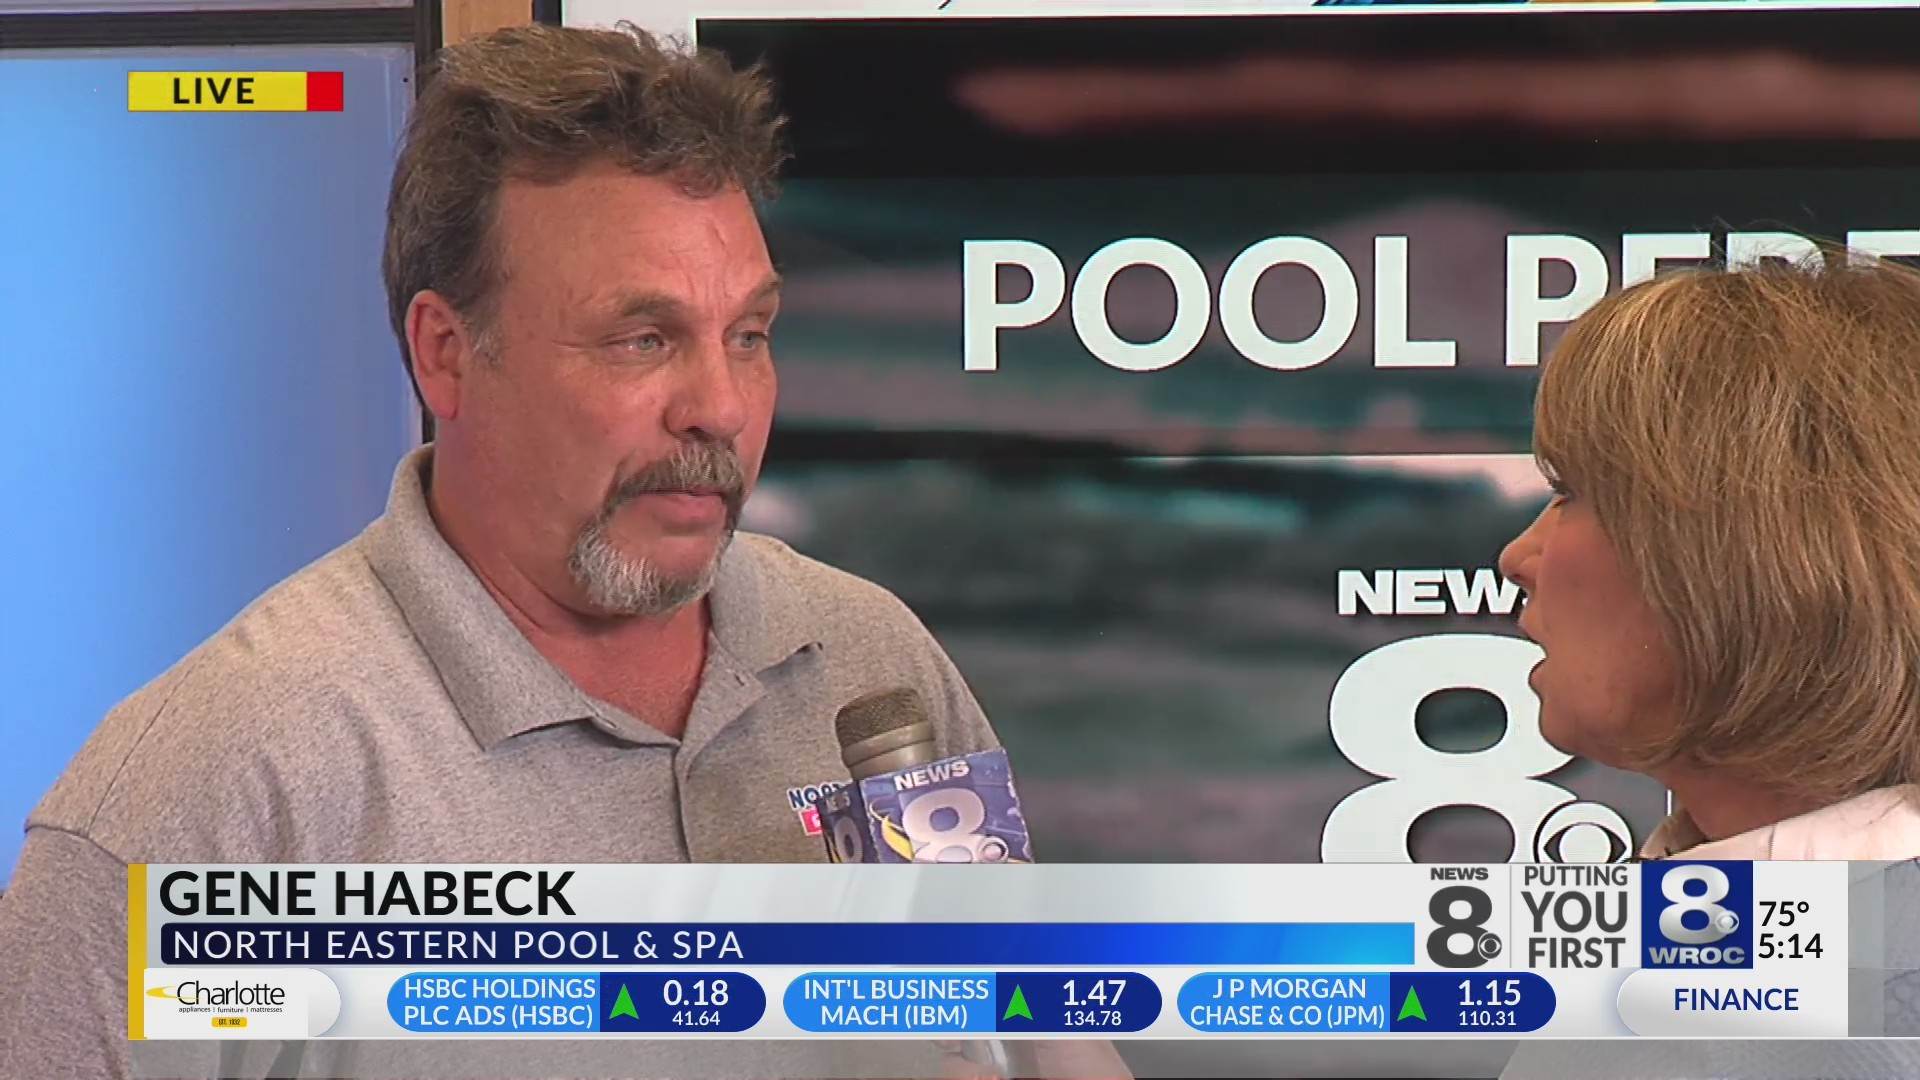 PYF: Pool Perfection Pool Heaters